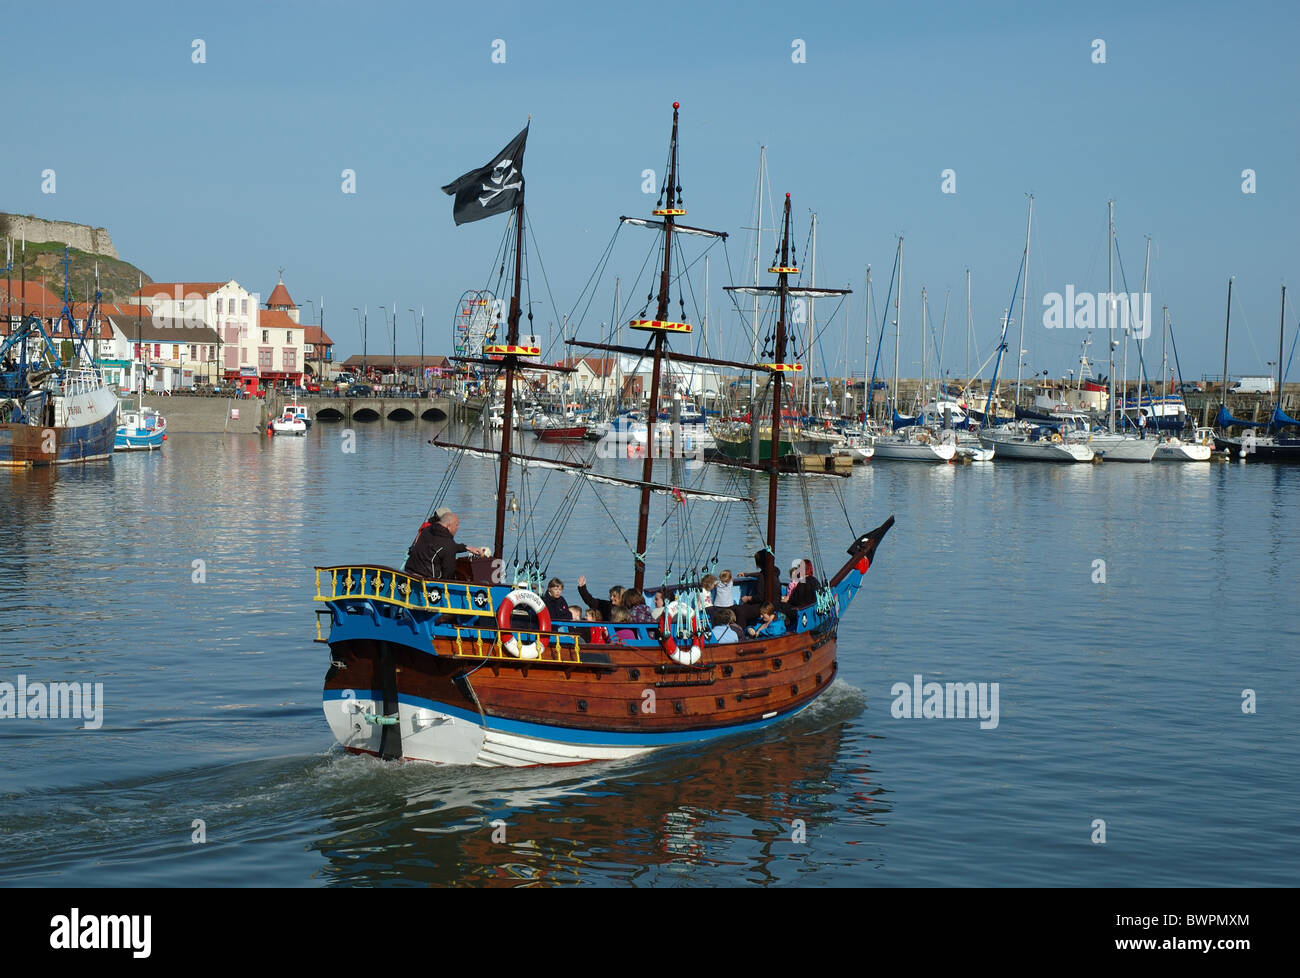 the pirate ship Hispaniola, Scarborough, North Yorkshire, England, UK - Stock Image